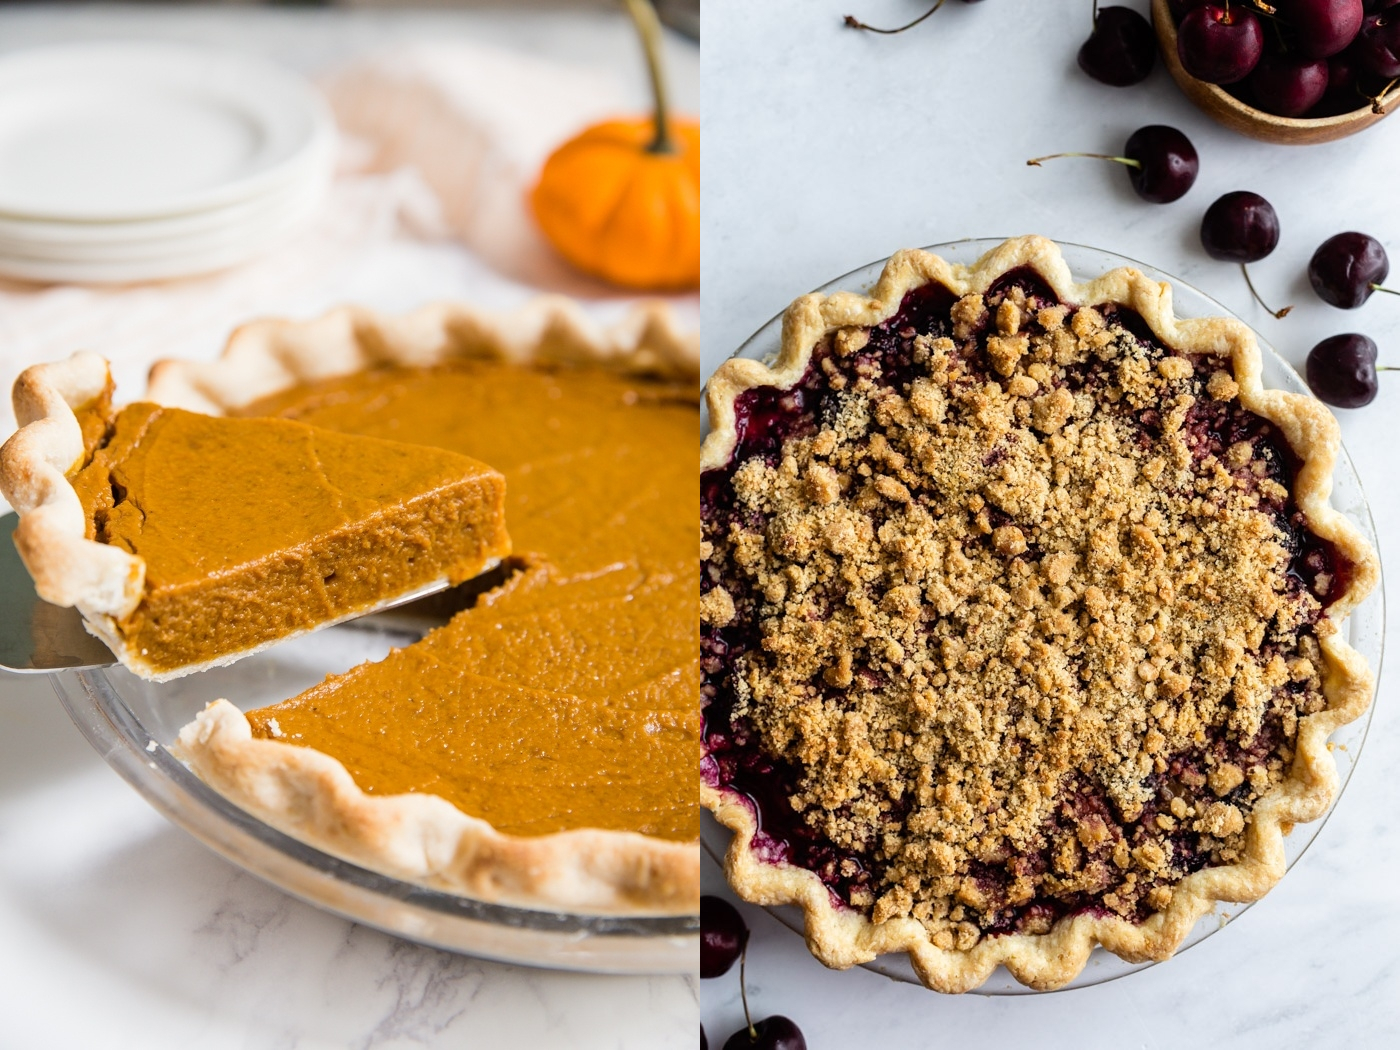 side by side images. left image: slice of pumpkin pie being pulled up from the whole pie. right image: cherry crumble pie